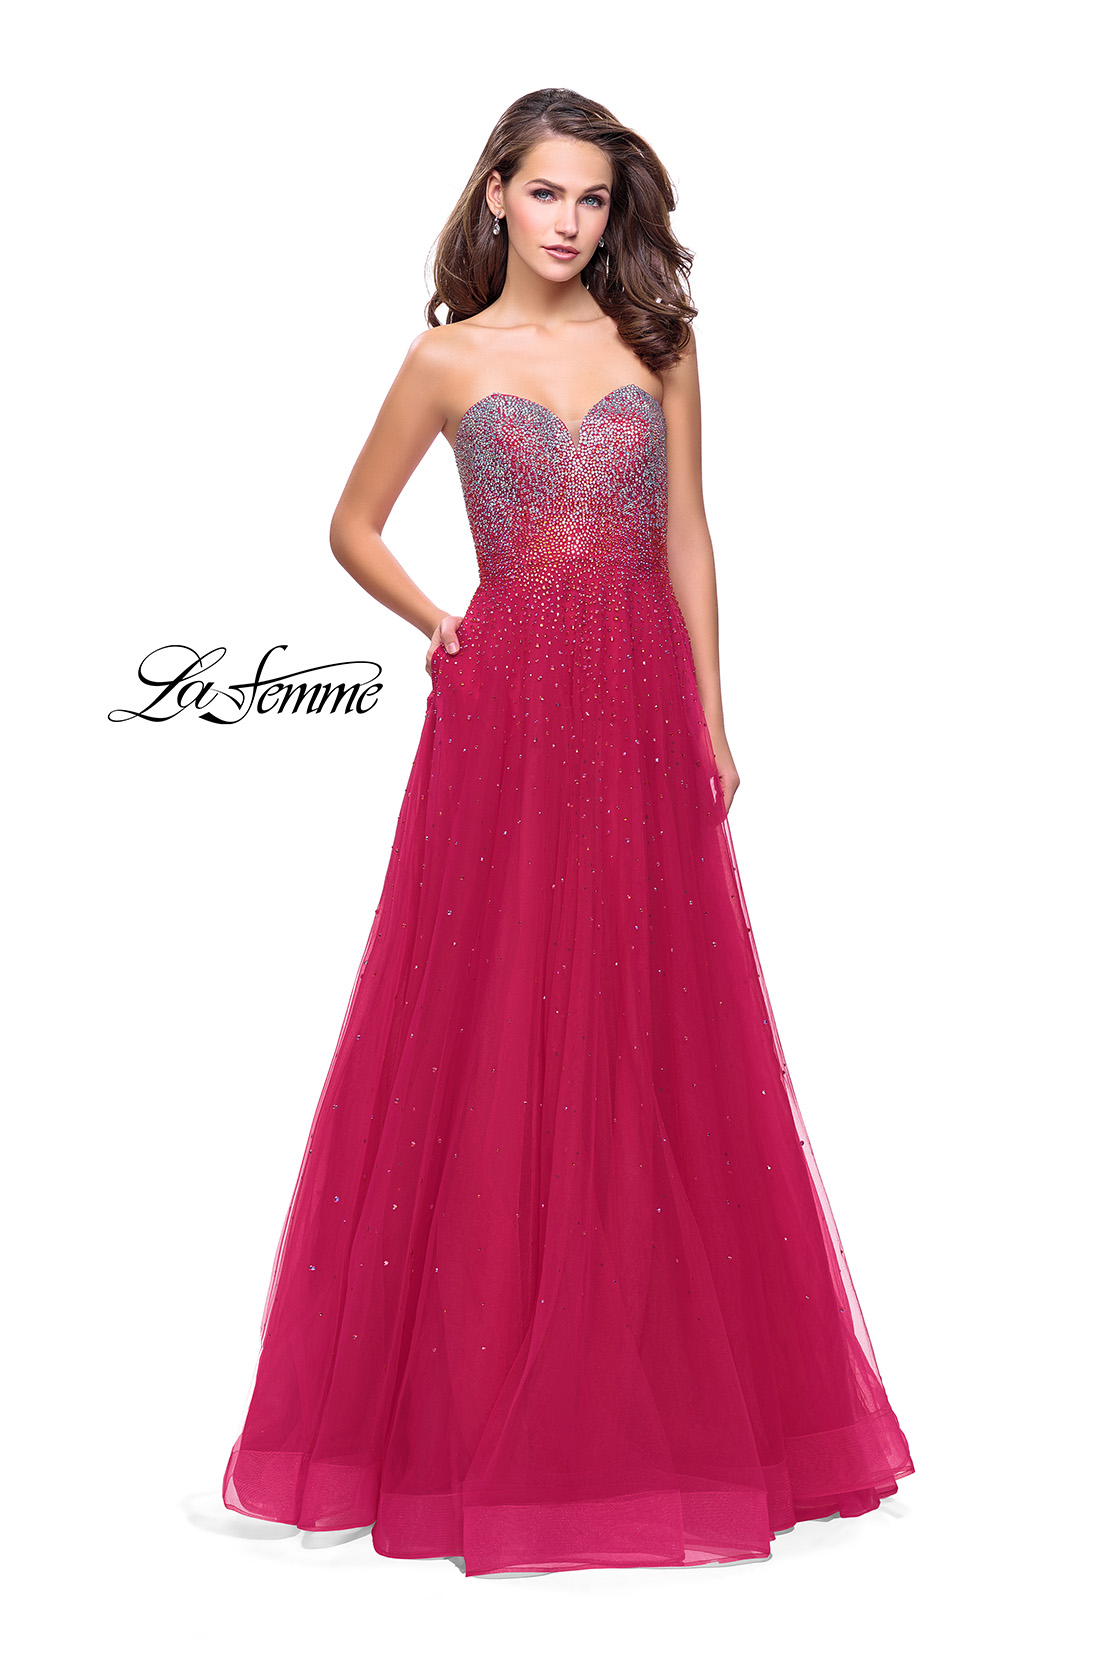 efff7ddb030 Picture of  Long Strapless Ball Gown with Metallic Ombre Rhinestones